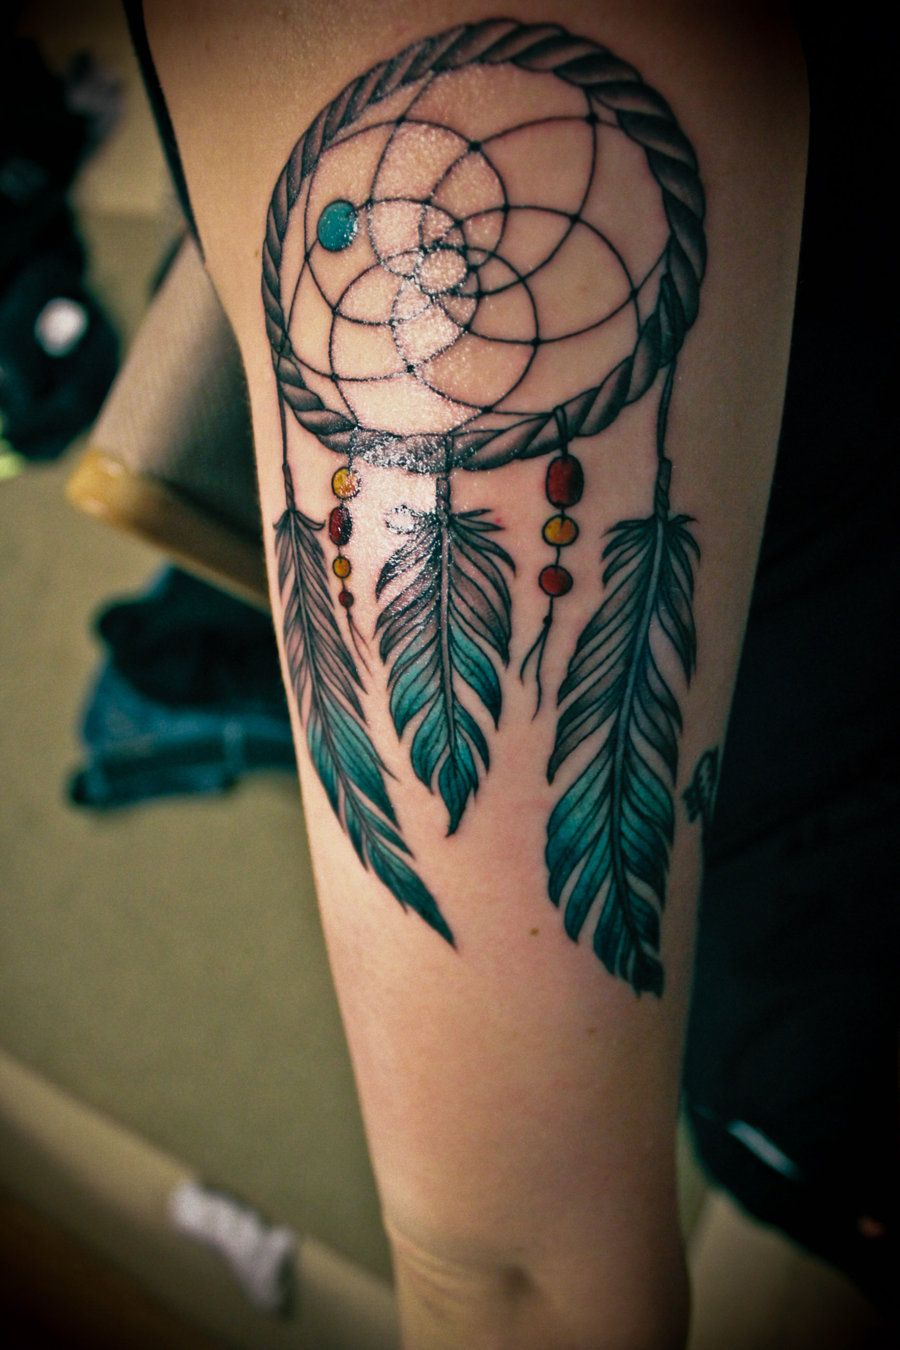 Dream Catcher Tattoo On Arm Fair 35 Awesome Dreamcatcher Tattoos And Meanings  Pinterest  Dream Review